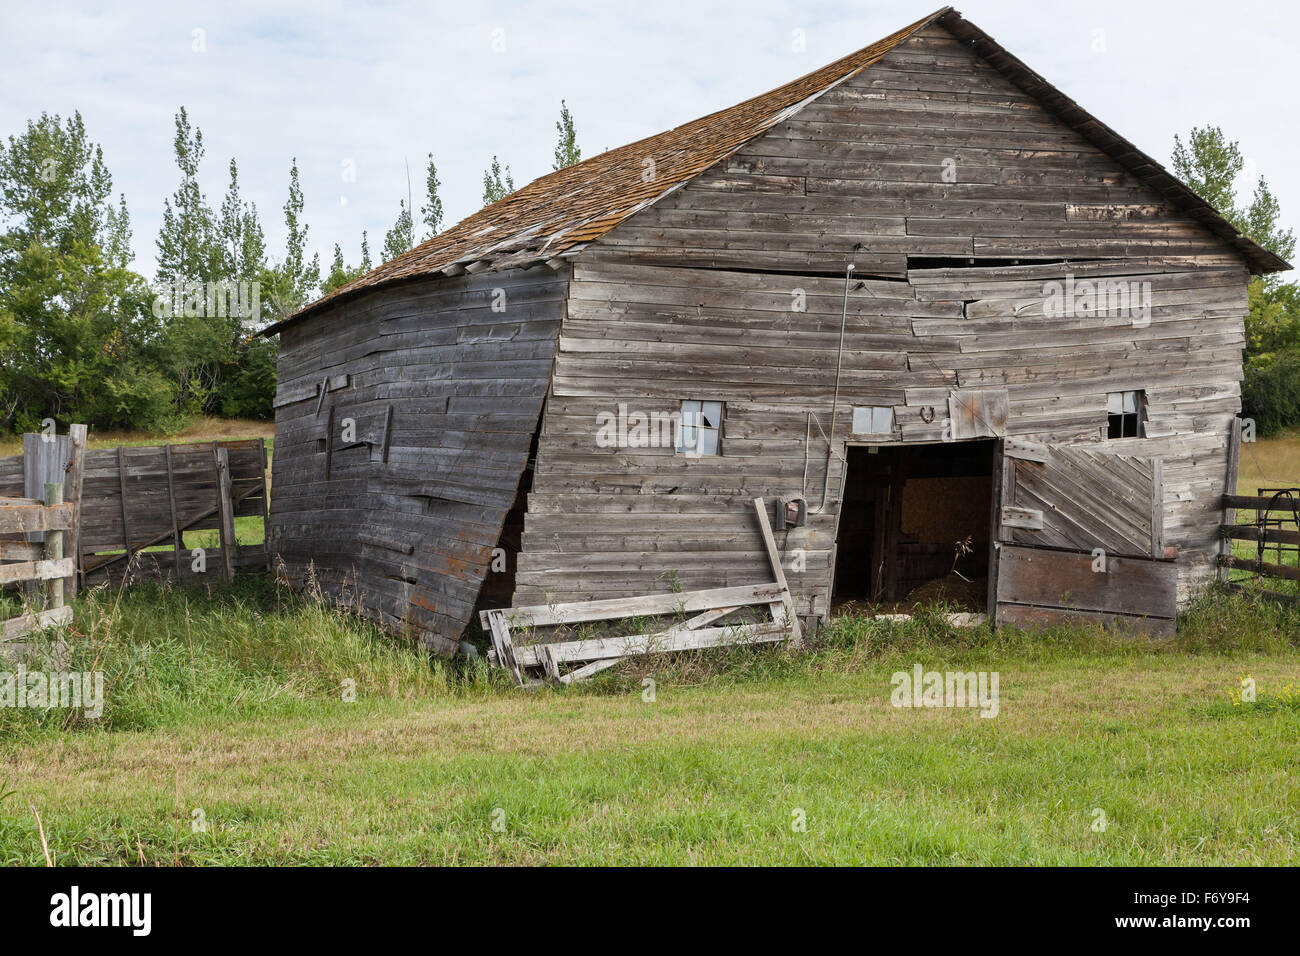 the dilapidated old barn sits on the homestead farm, no longer needed, aged beyond repair, it could be anywhere - Stock Image